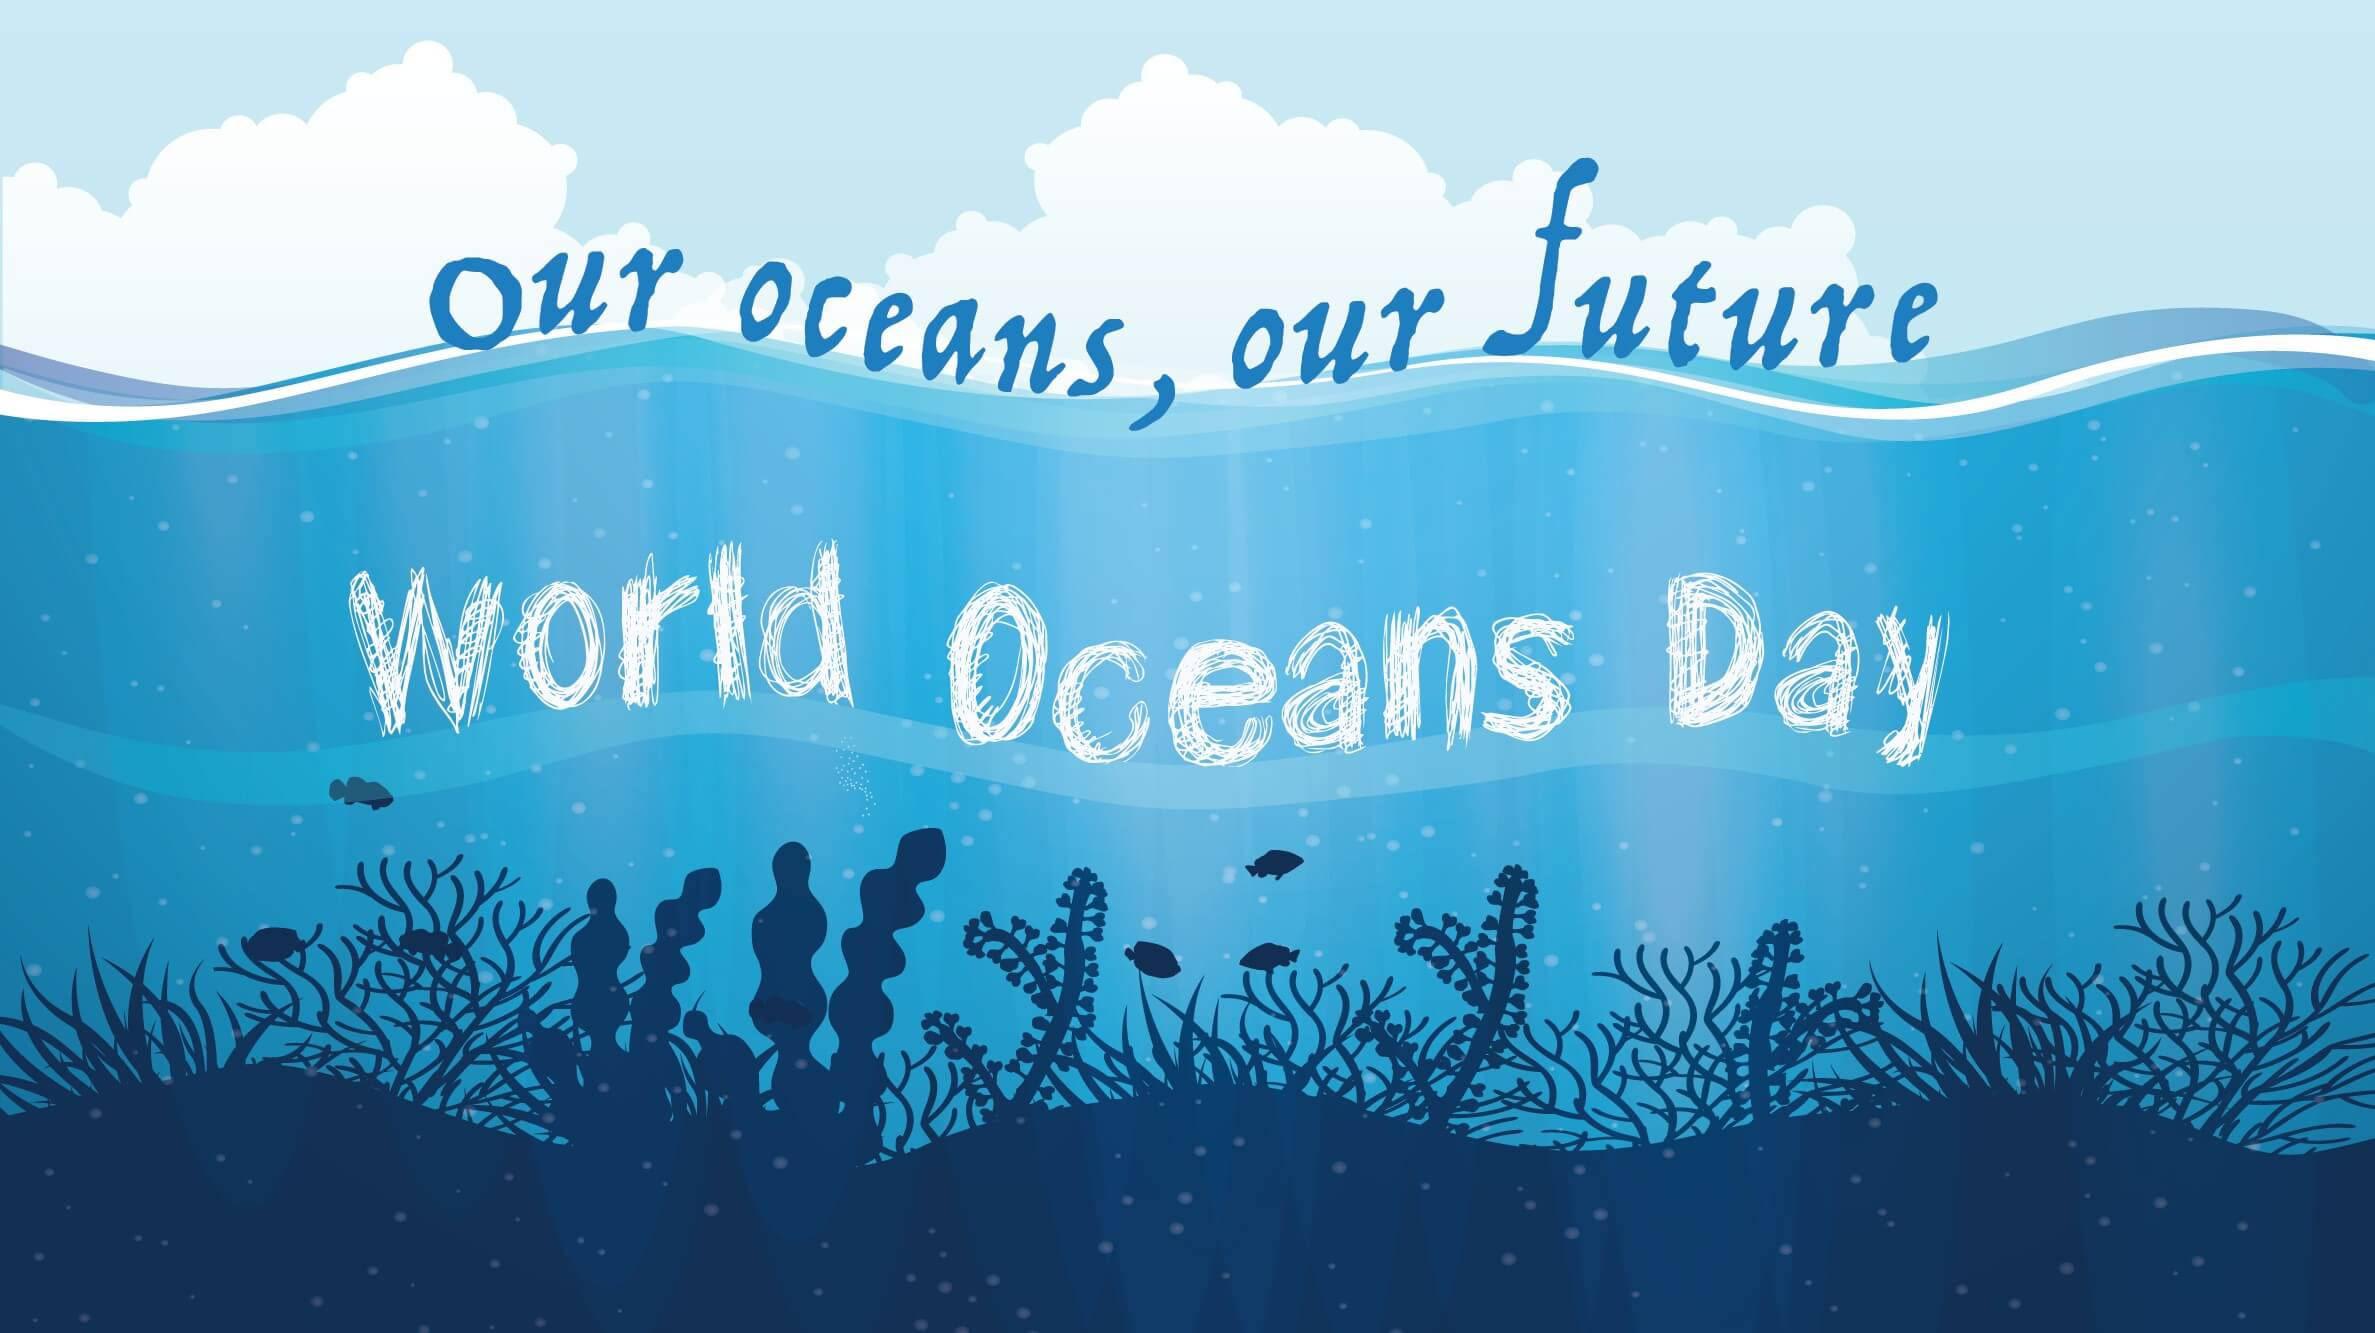 happy world oceans day our ocean our future wallpaper